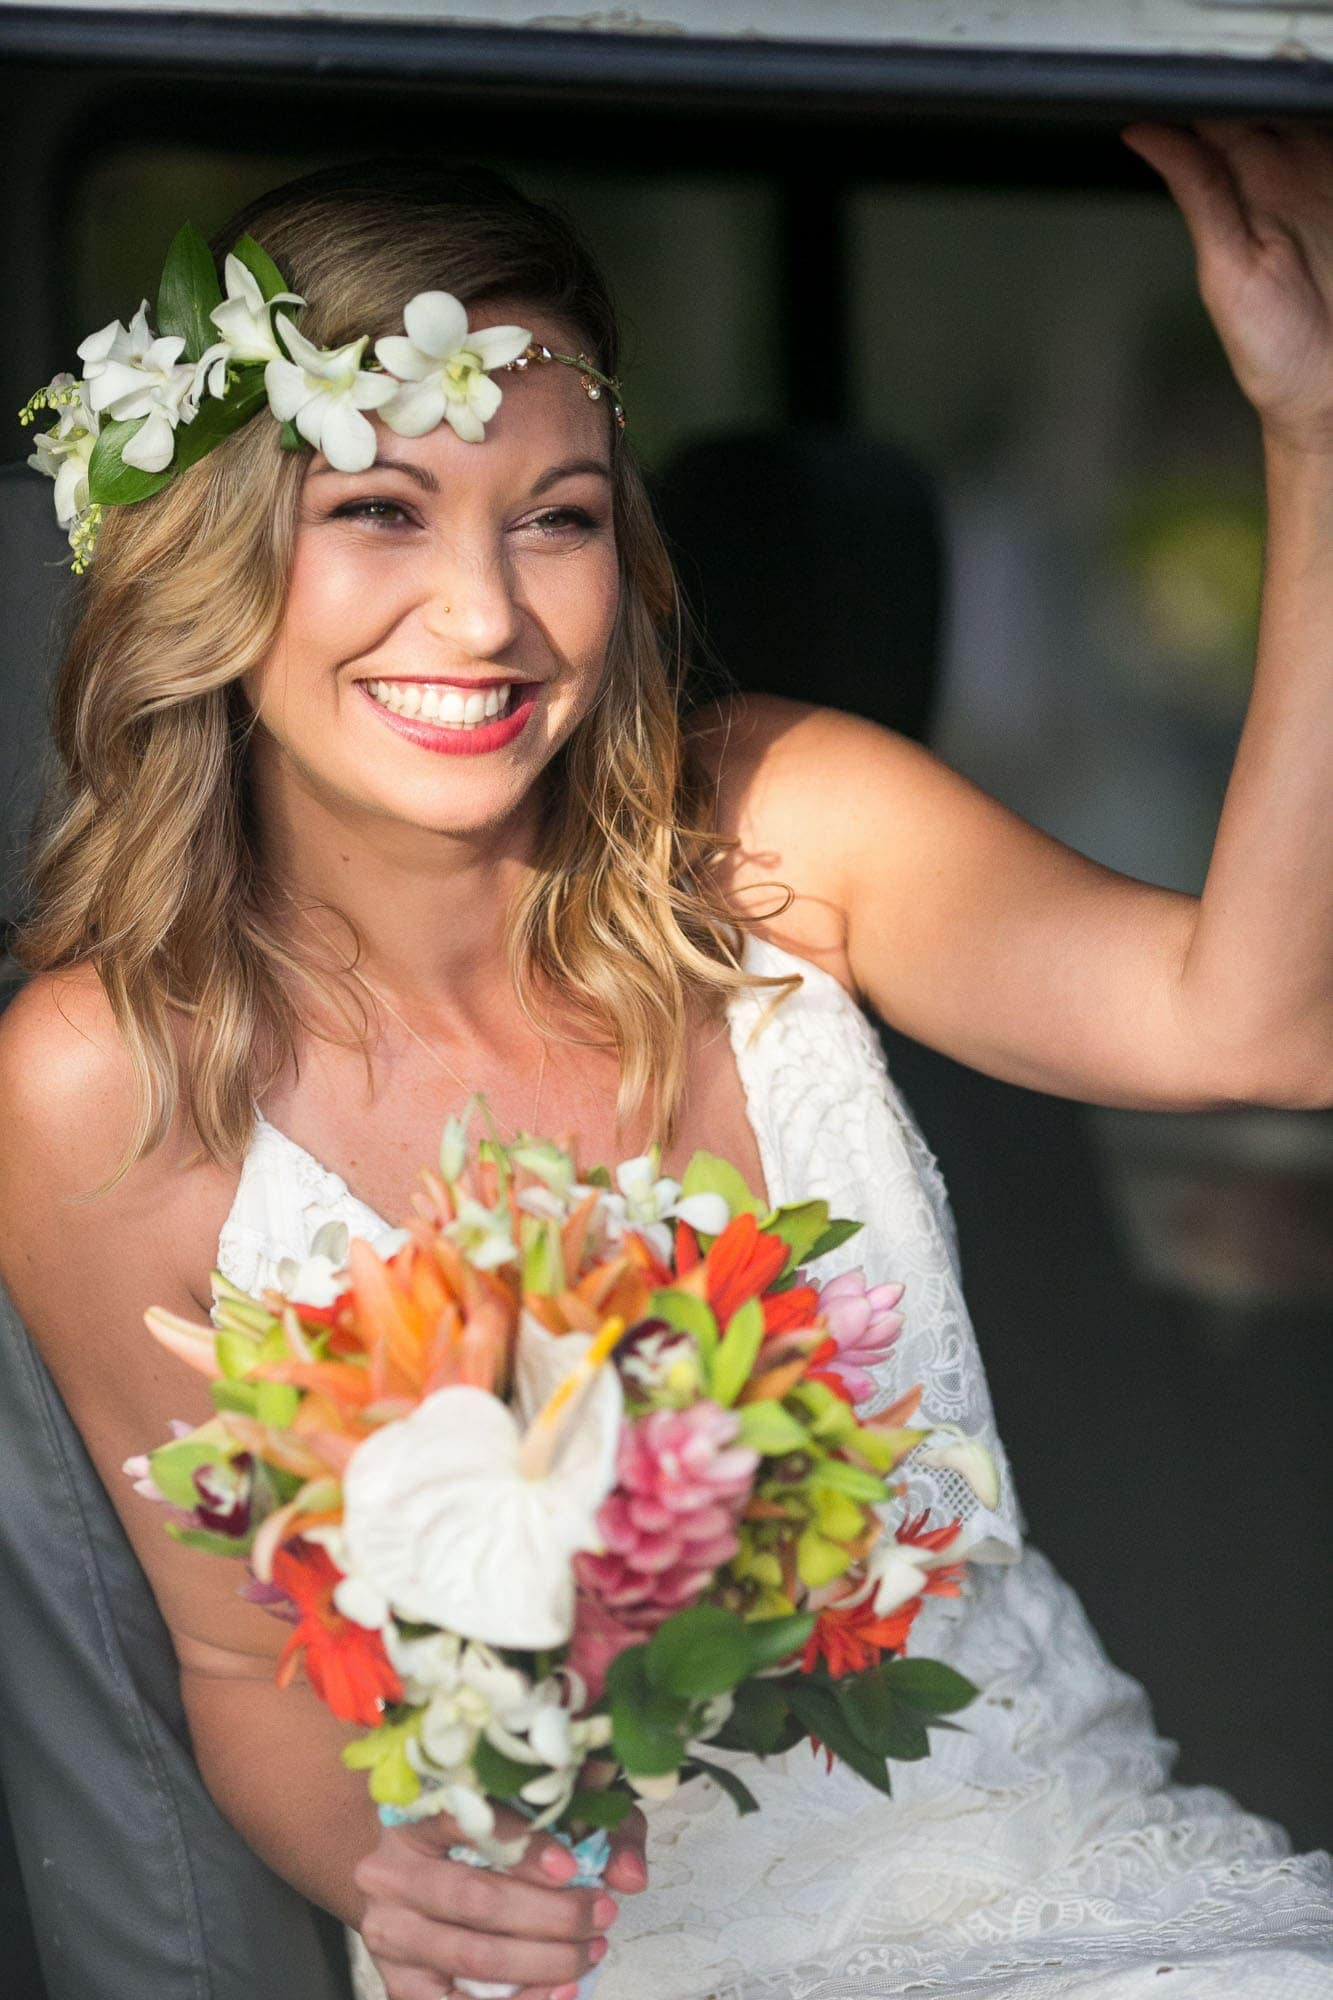 No smile outshines this lovely bride